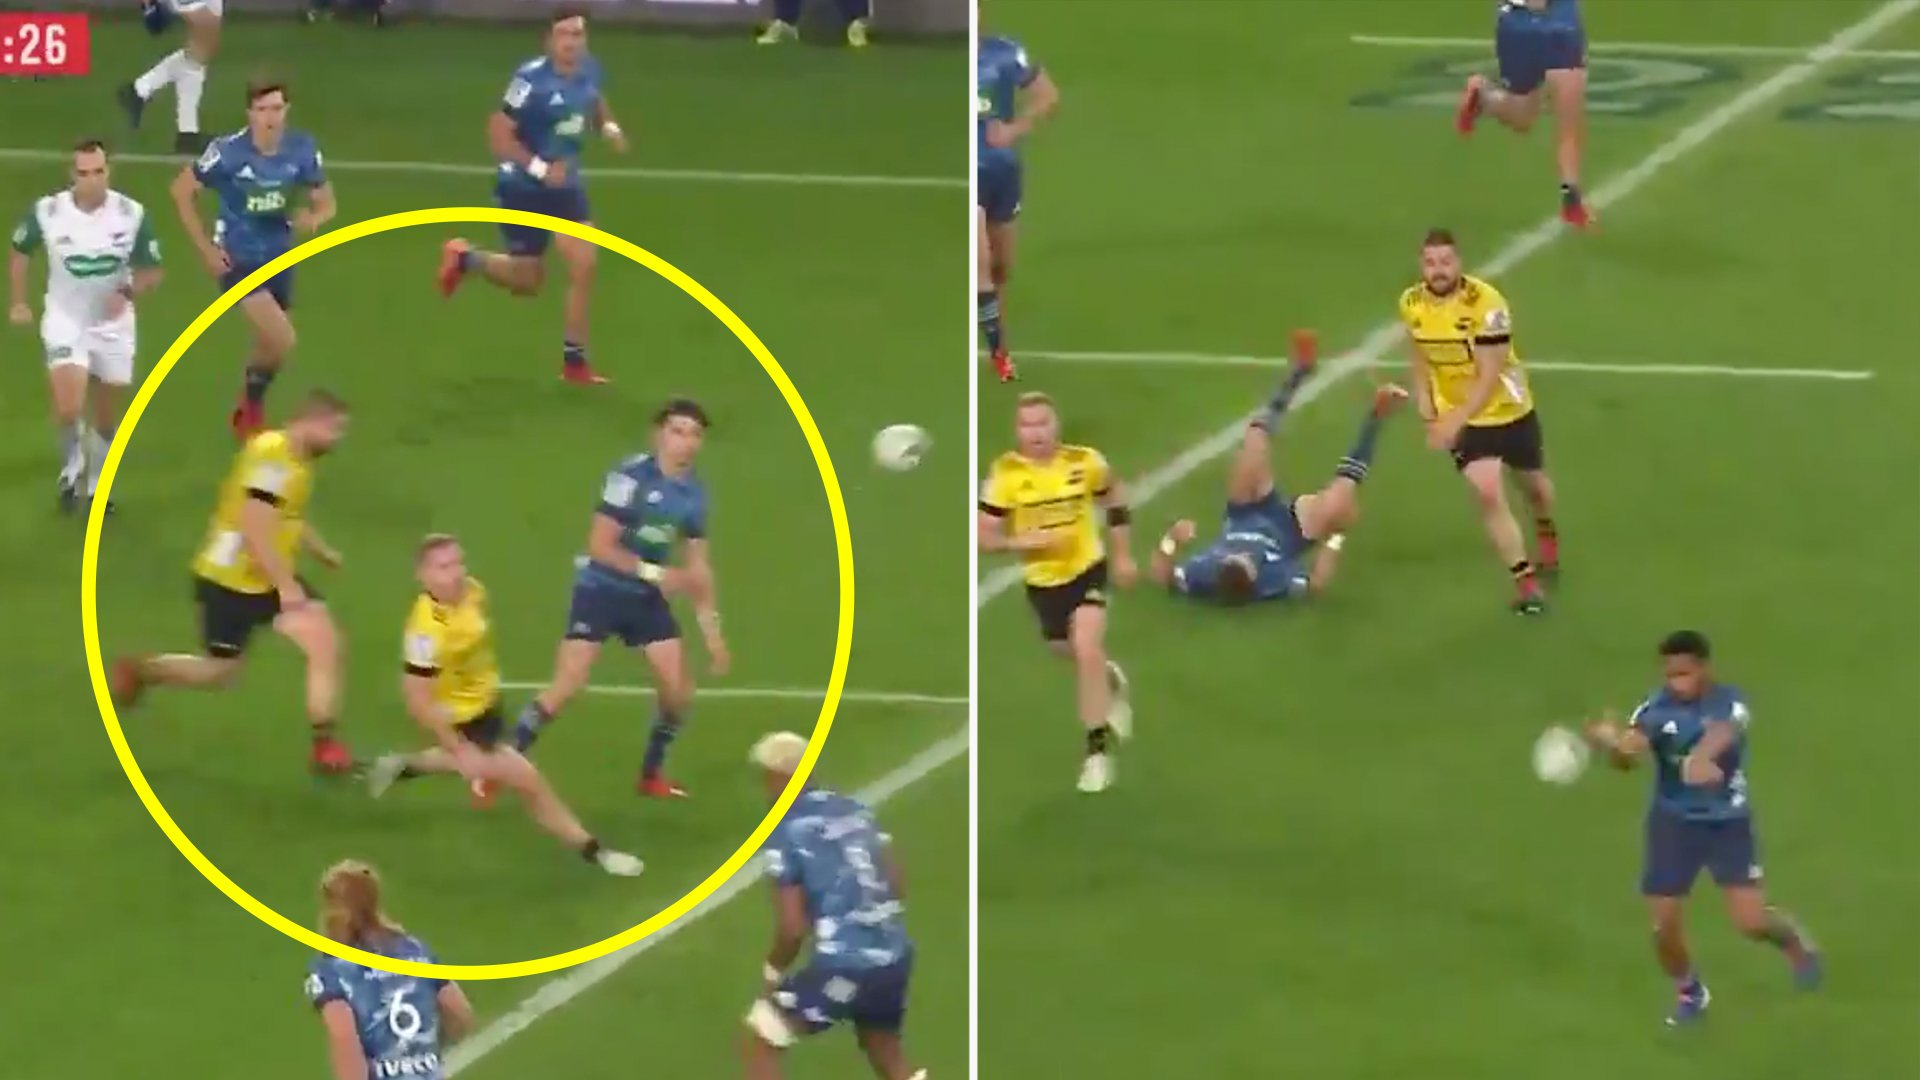 Not many people saw the horrendous grub hit that Dane Coles made on his former teammate Beauden Barrett